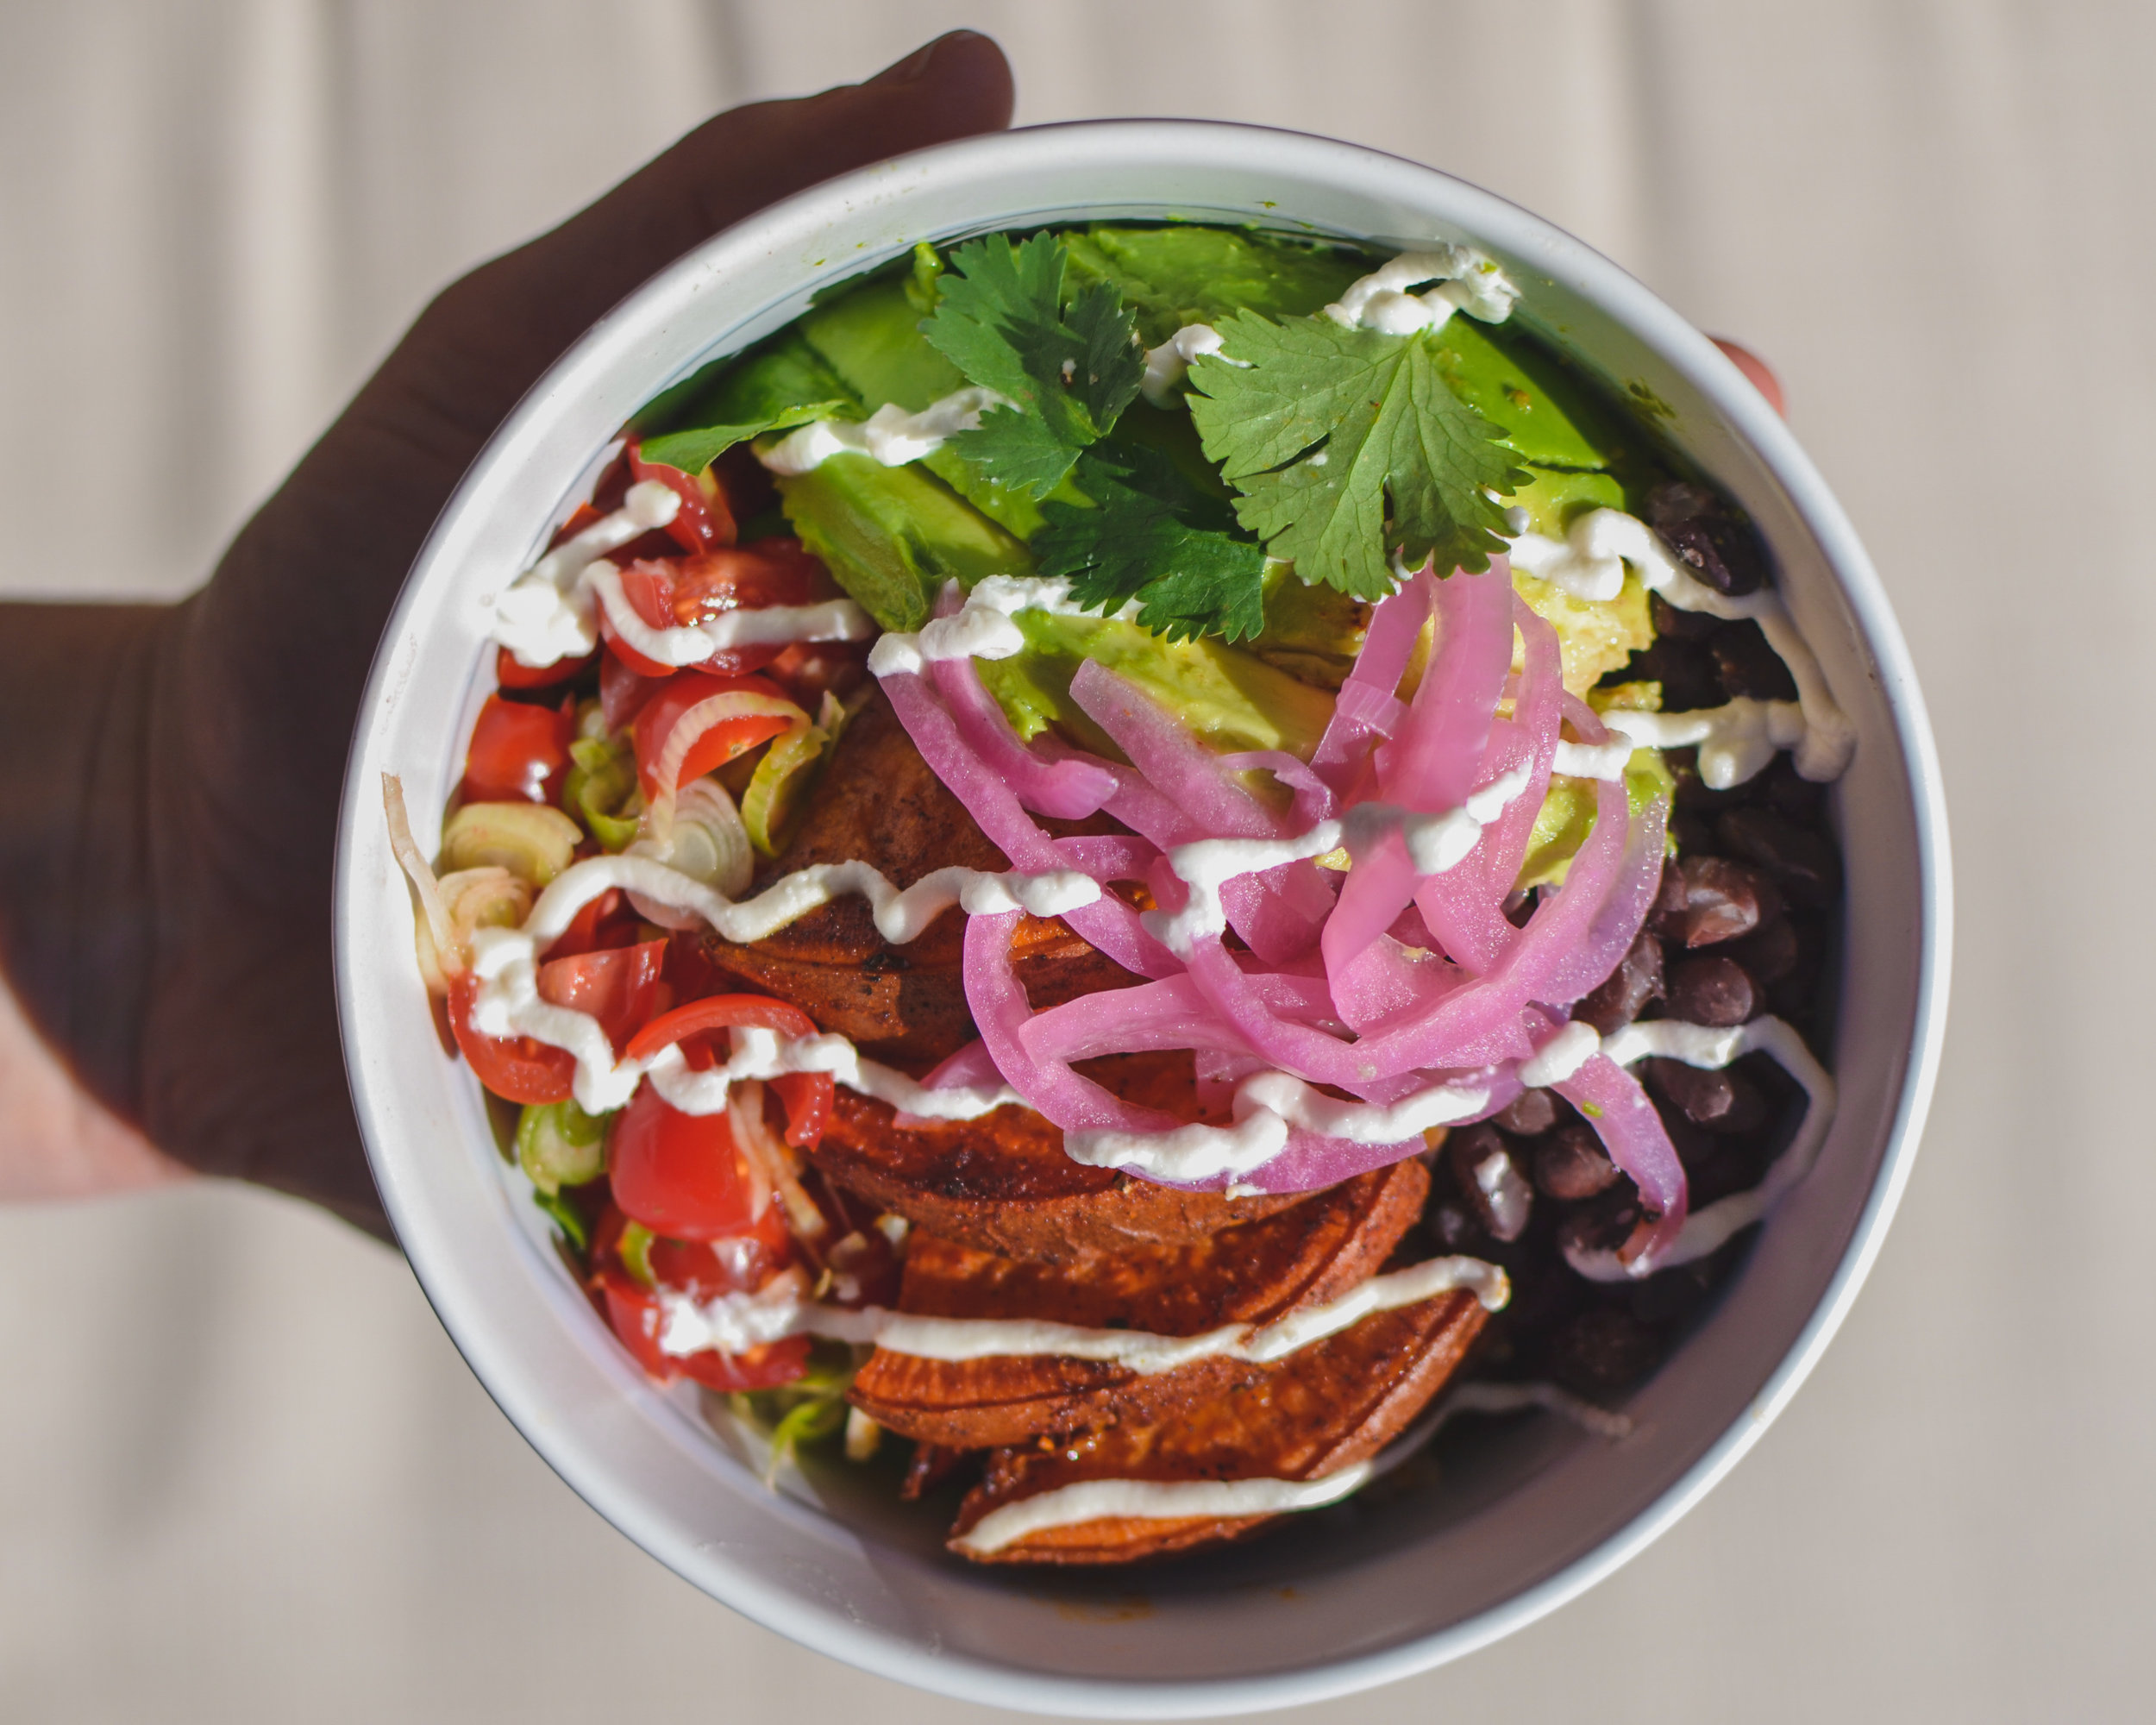 Baja Sweet Potato Burrito Bowl - Chili Roasted Sweet Potatoes, cumin black beans, arugula, brown rice, garlicky pico de Gallo, punchy pickled red onion, sliced avocado, labneh, Cilantro